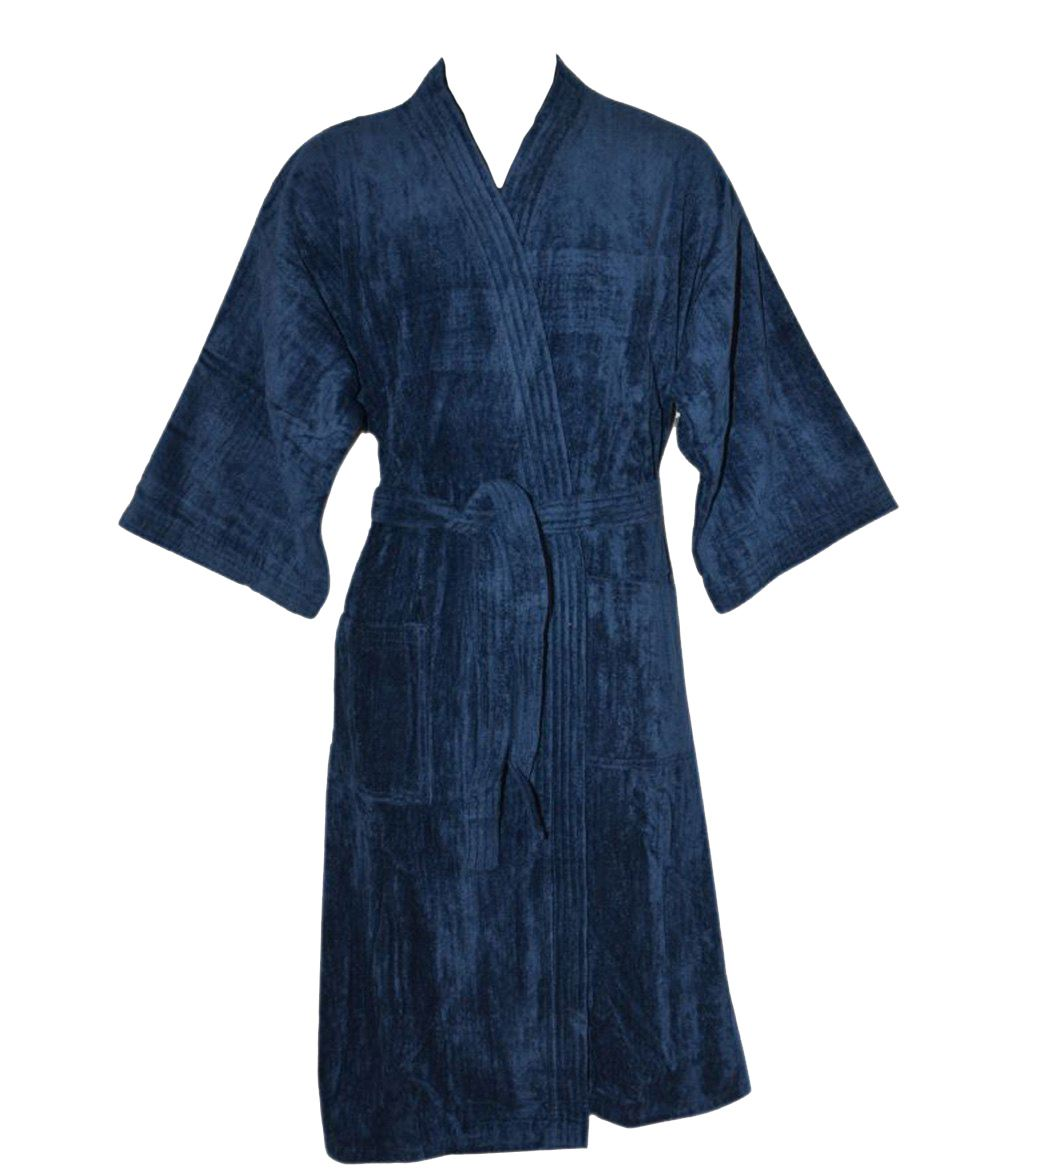 Nightware Toweling Bathrobe 100% Egyptian Cotton Dressing Gown with ...